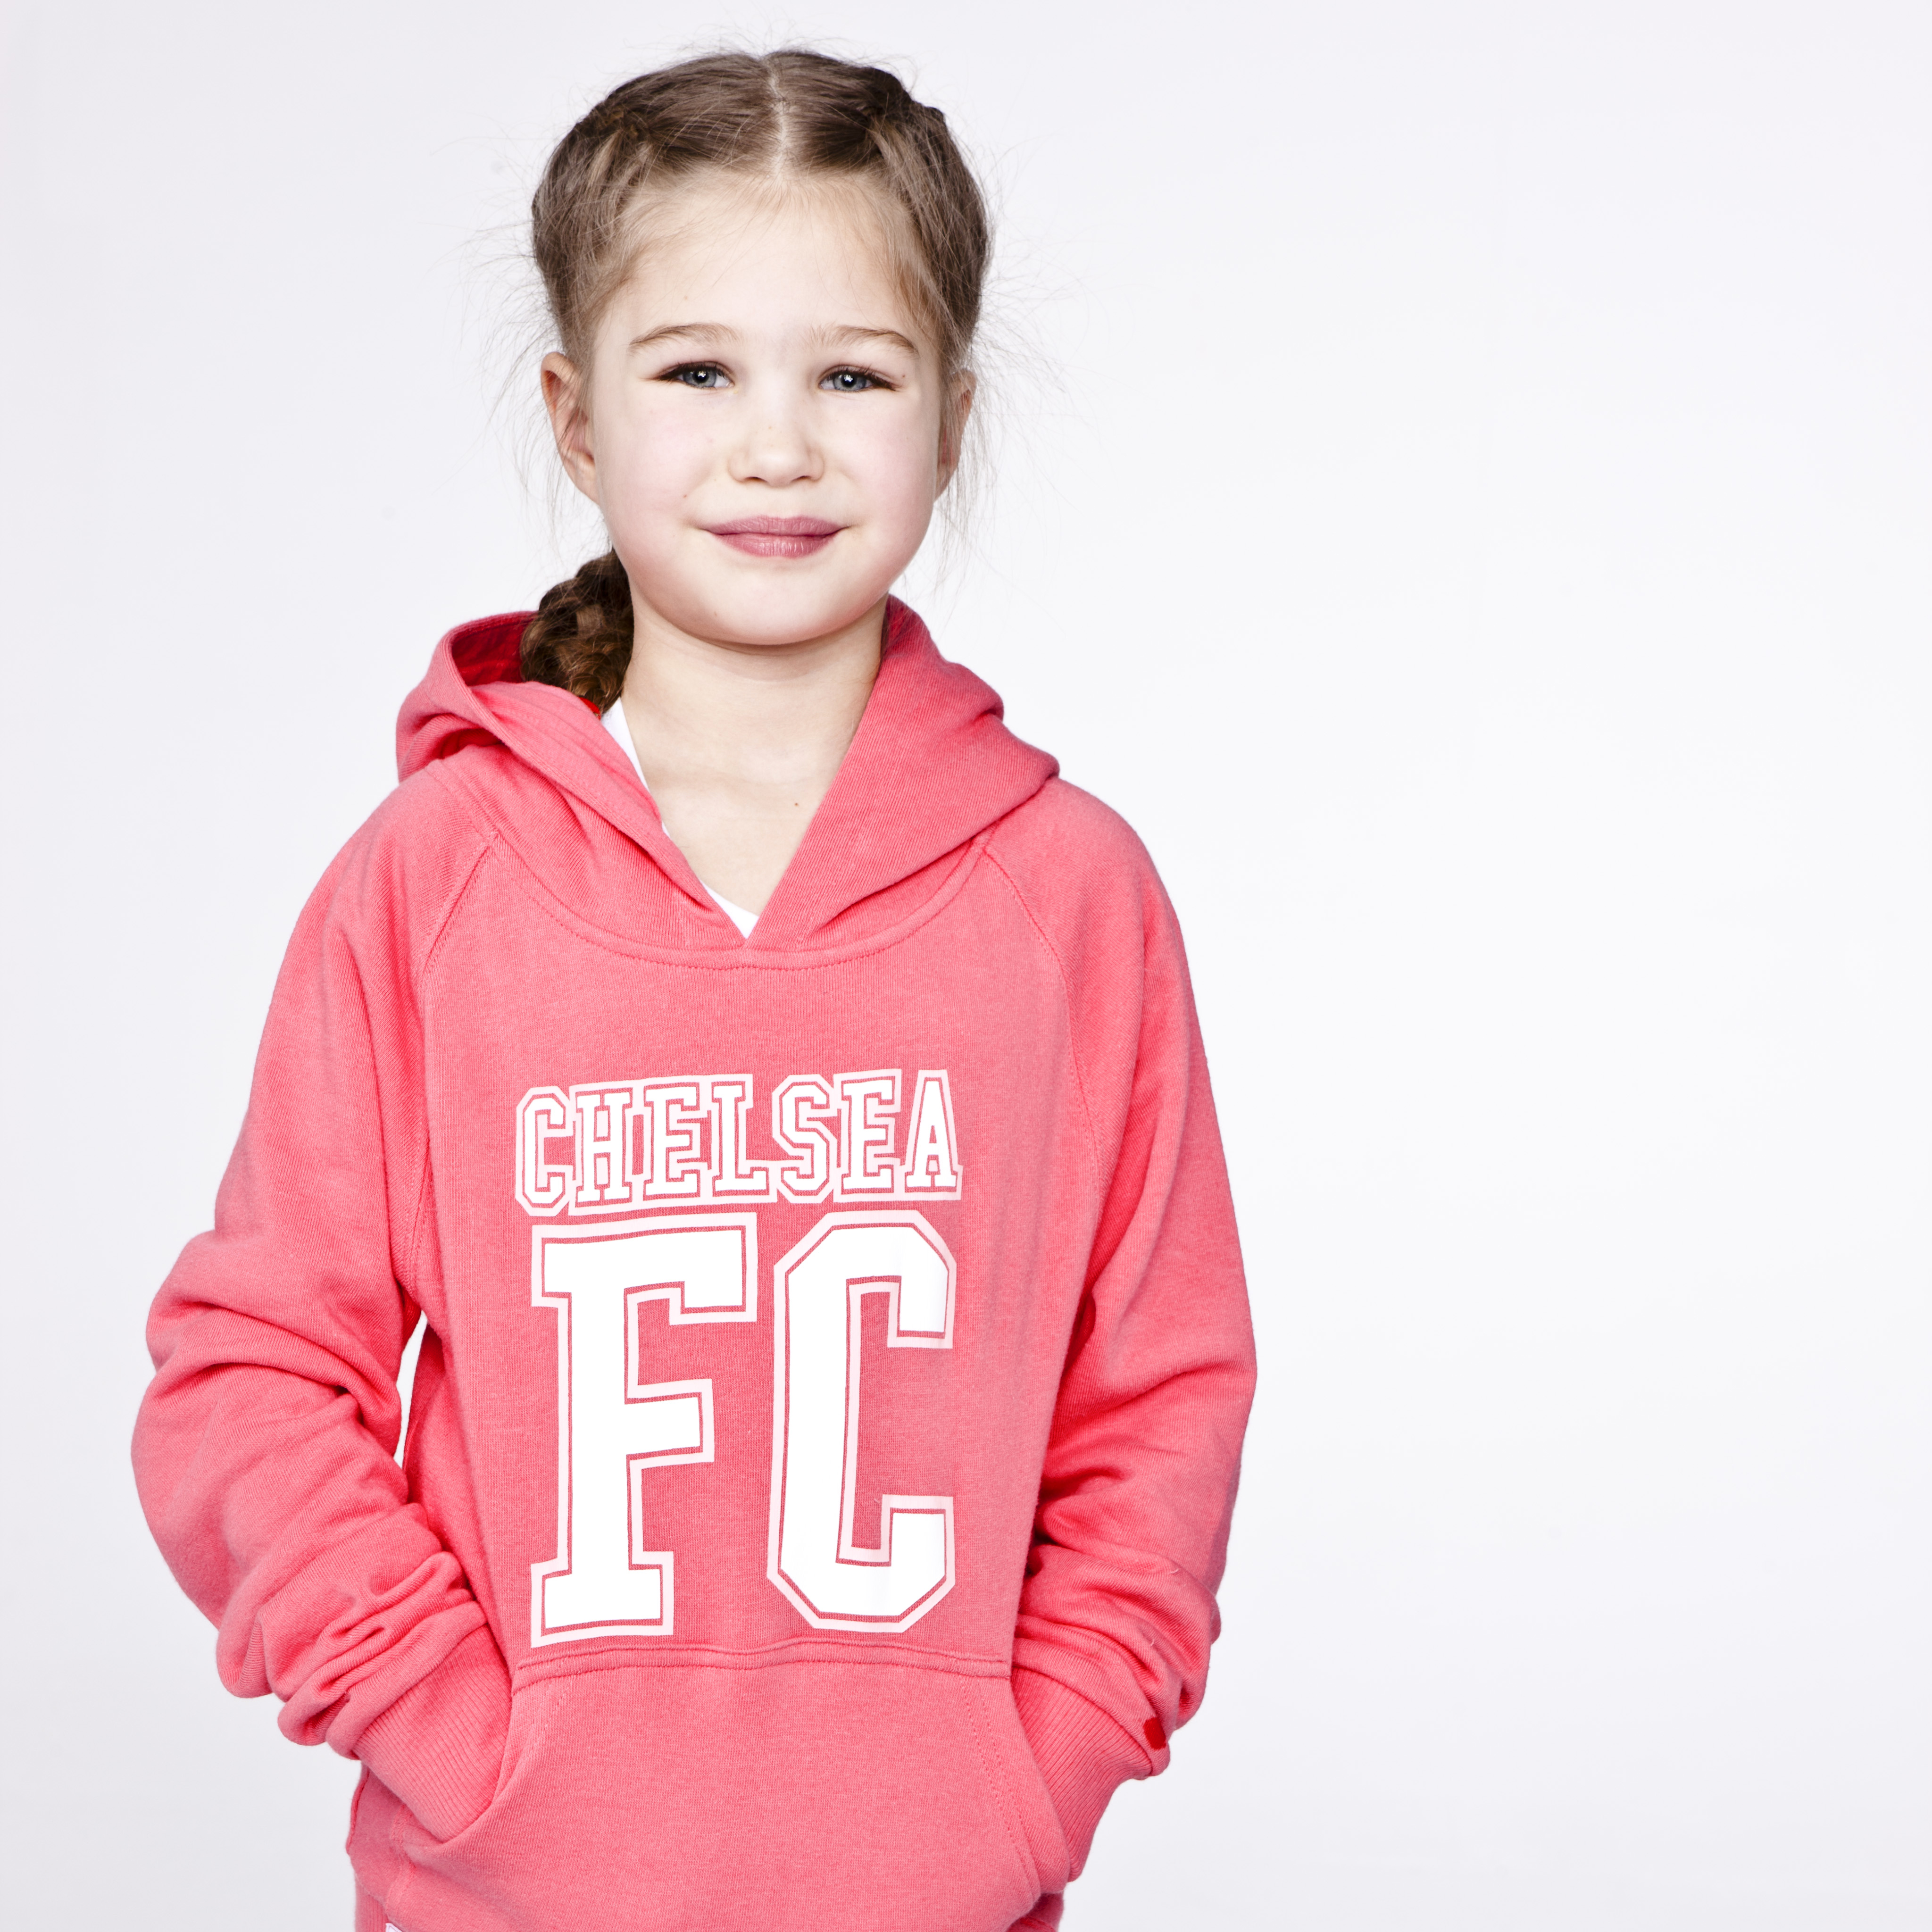 Chelsea Fleece Hoodie - Blush Pink - Girls